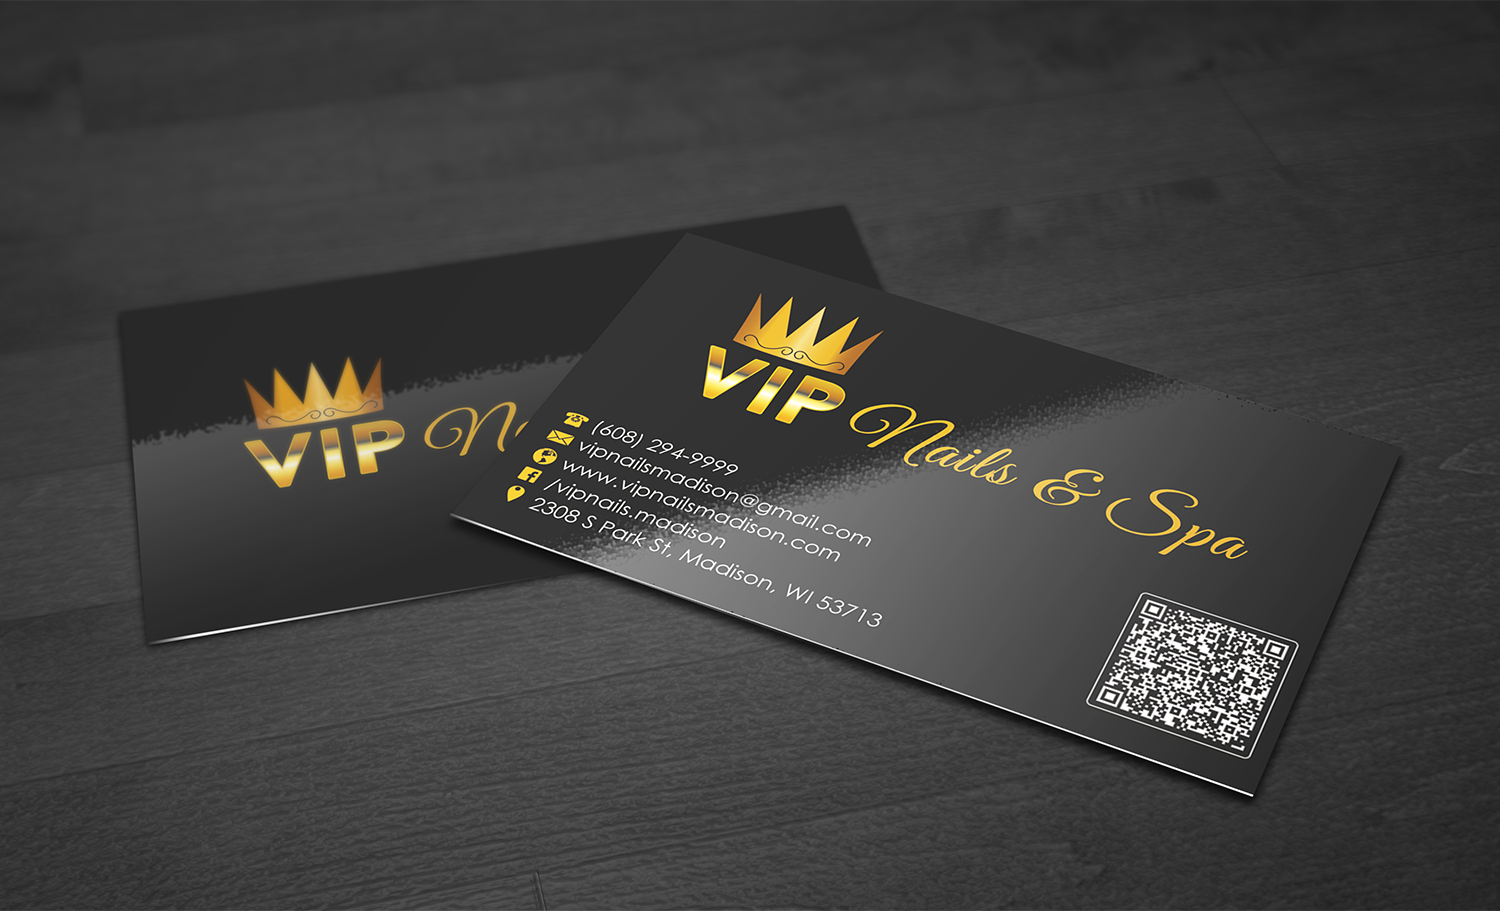 Elegant playful business business card design for vip nails spa business card design by premnice for vip nails spa design 9237688 reheart Choice Image